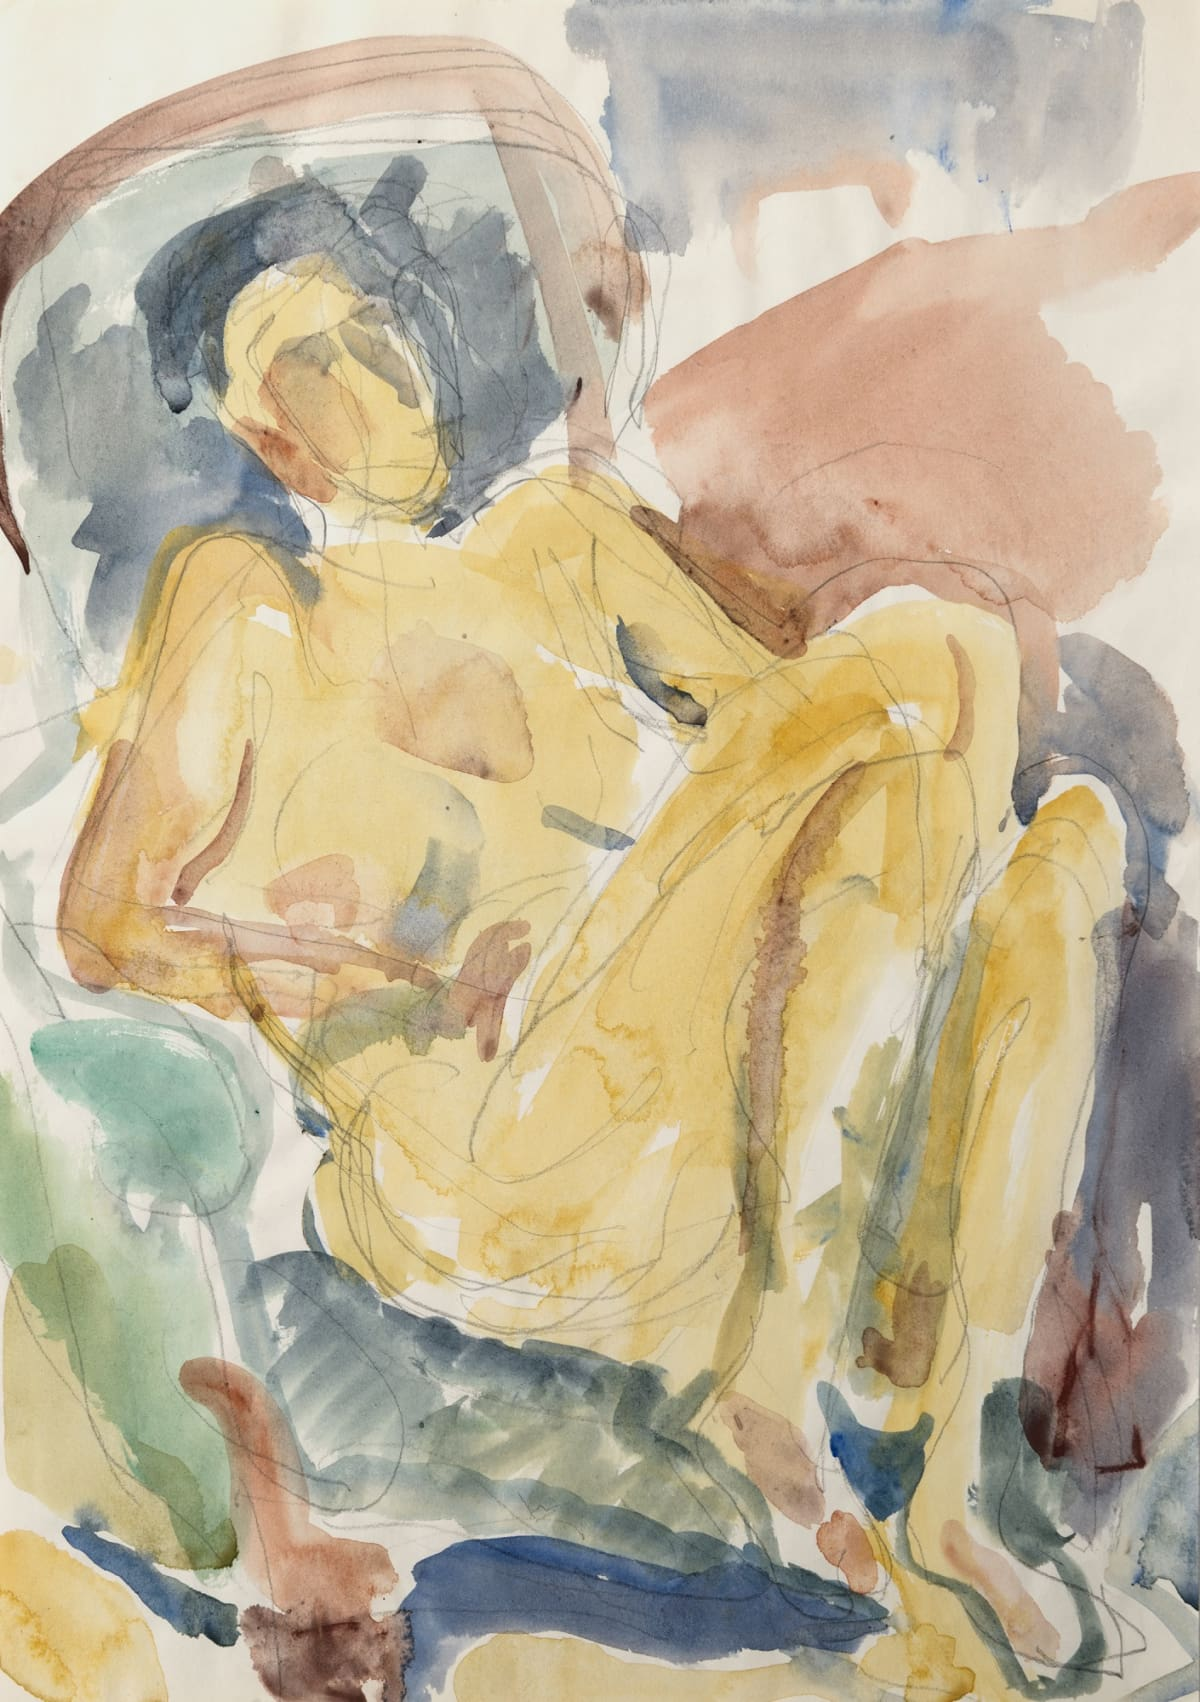 Mountford Tosswill Woollaston Untitled [Nude in Chair] (4), c. 1984 Watercolour and pencil on paper 16.7 x 11.8 in 42.5 x 30 cm